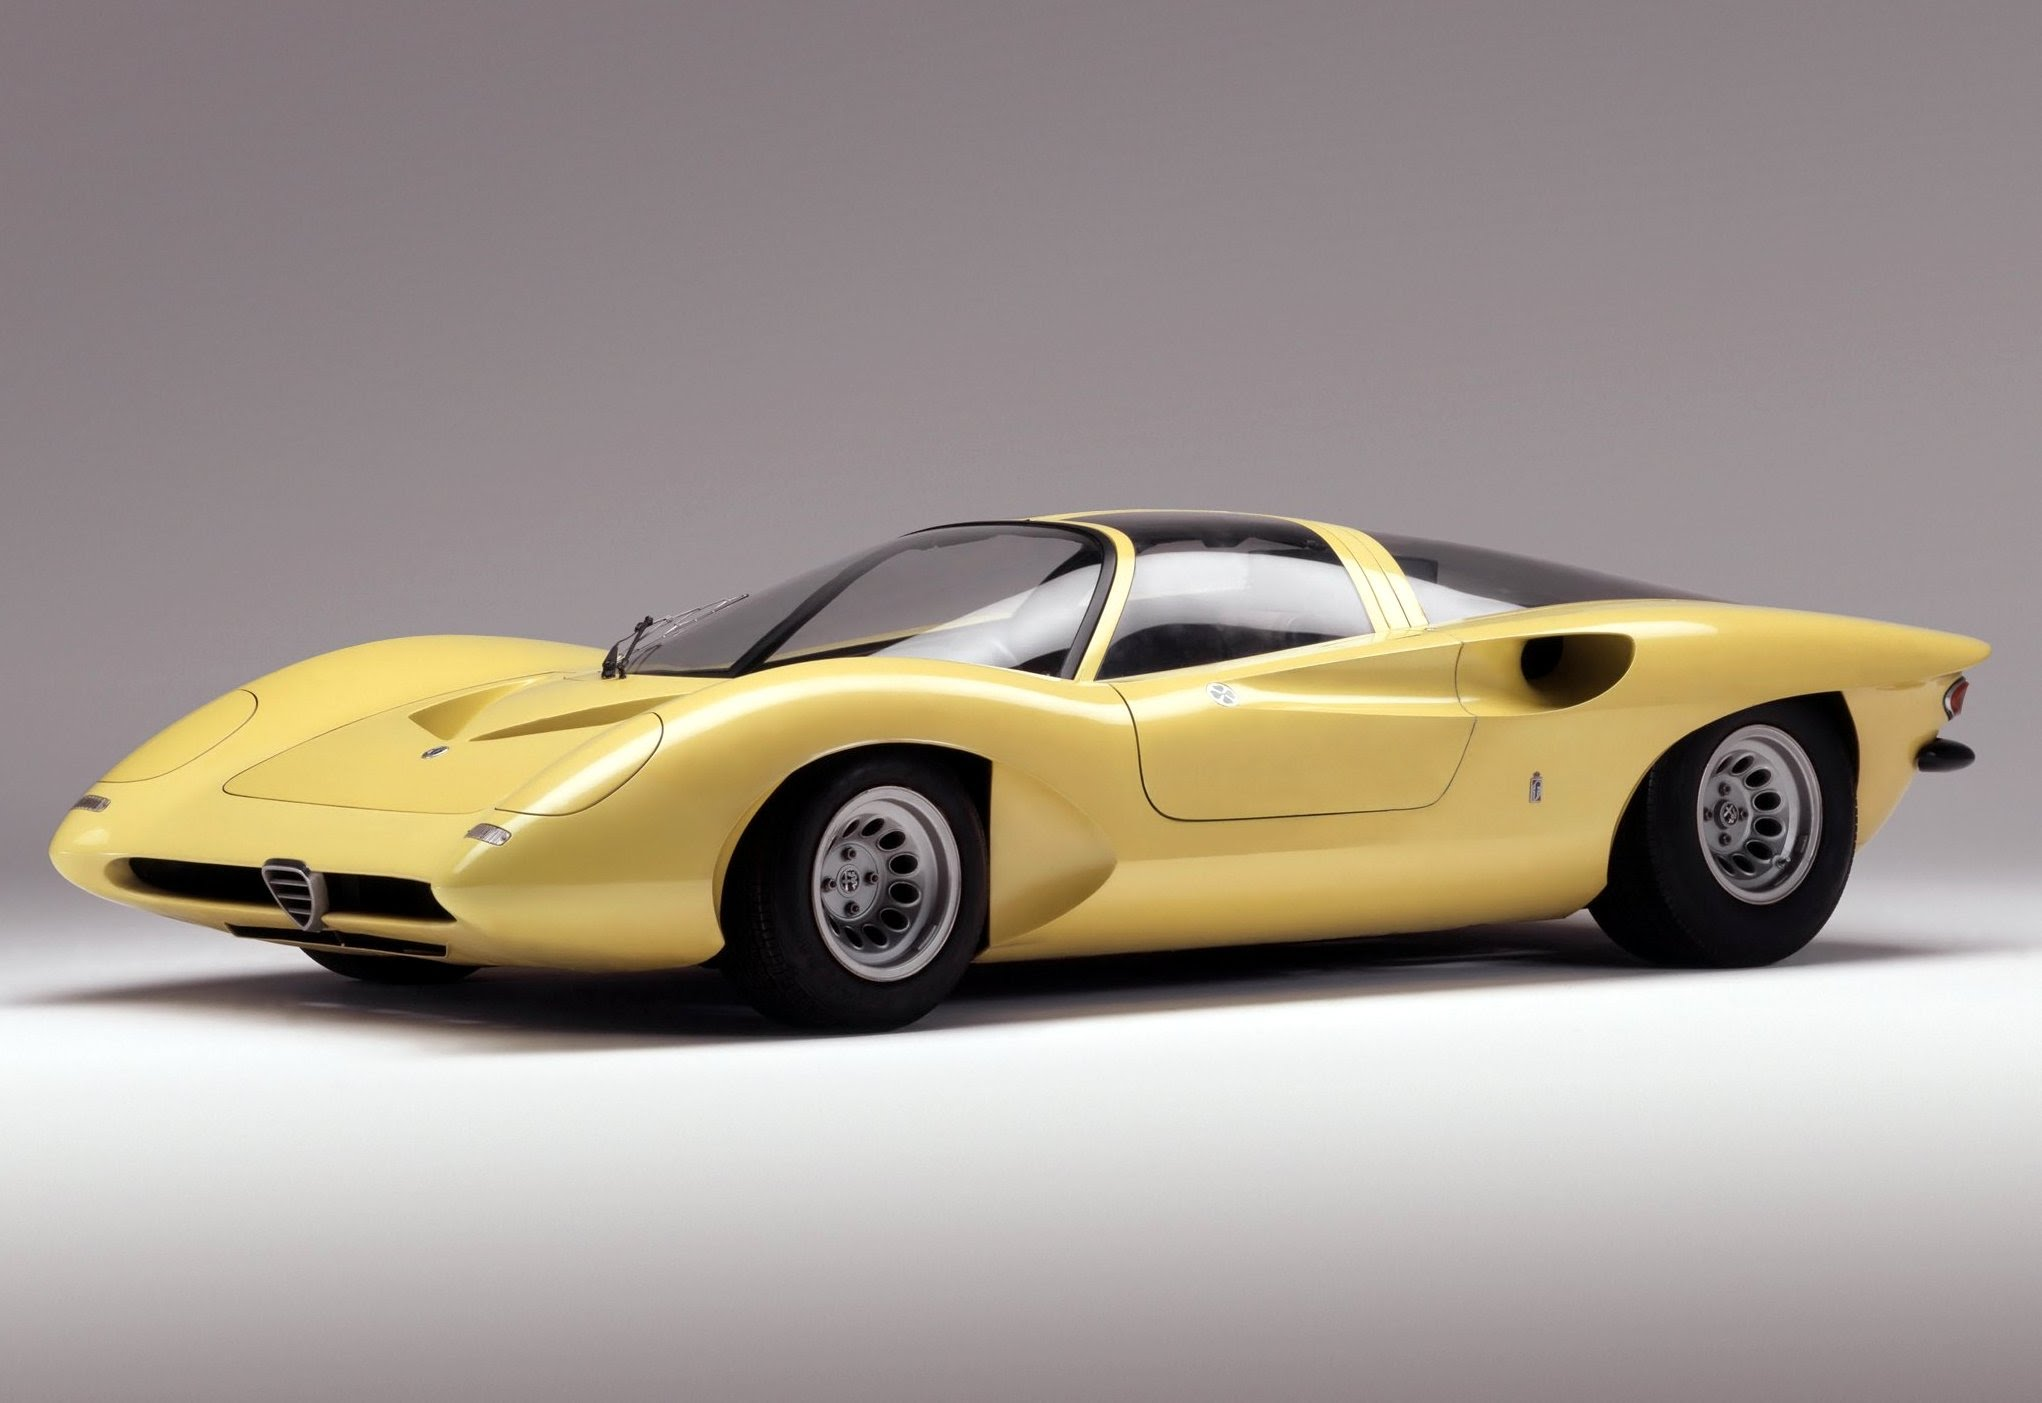 1969 Concept - P33 Tipo 33 besed